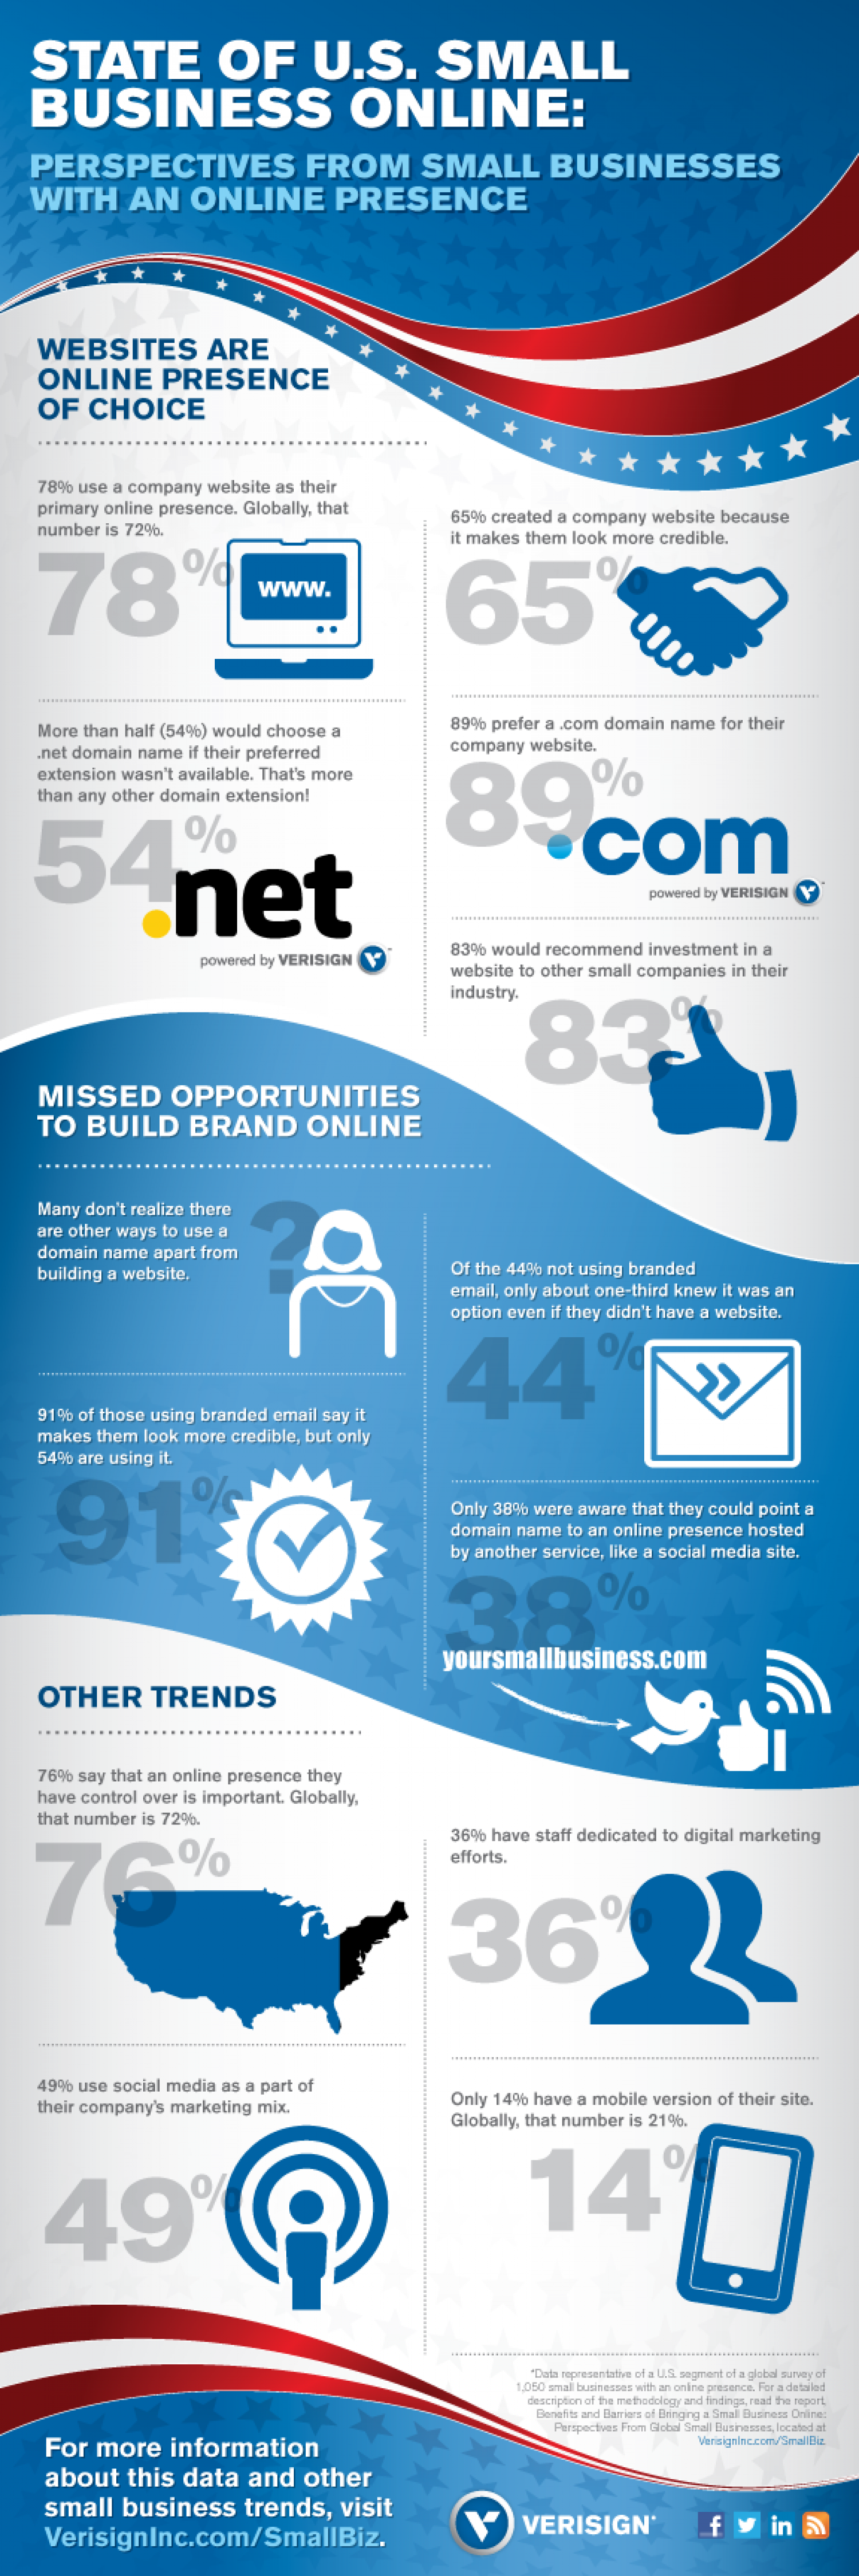 State of U.S. Small Business Online Infographic